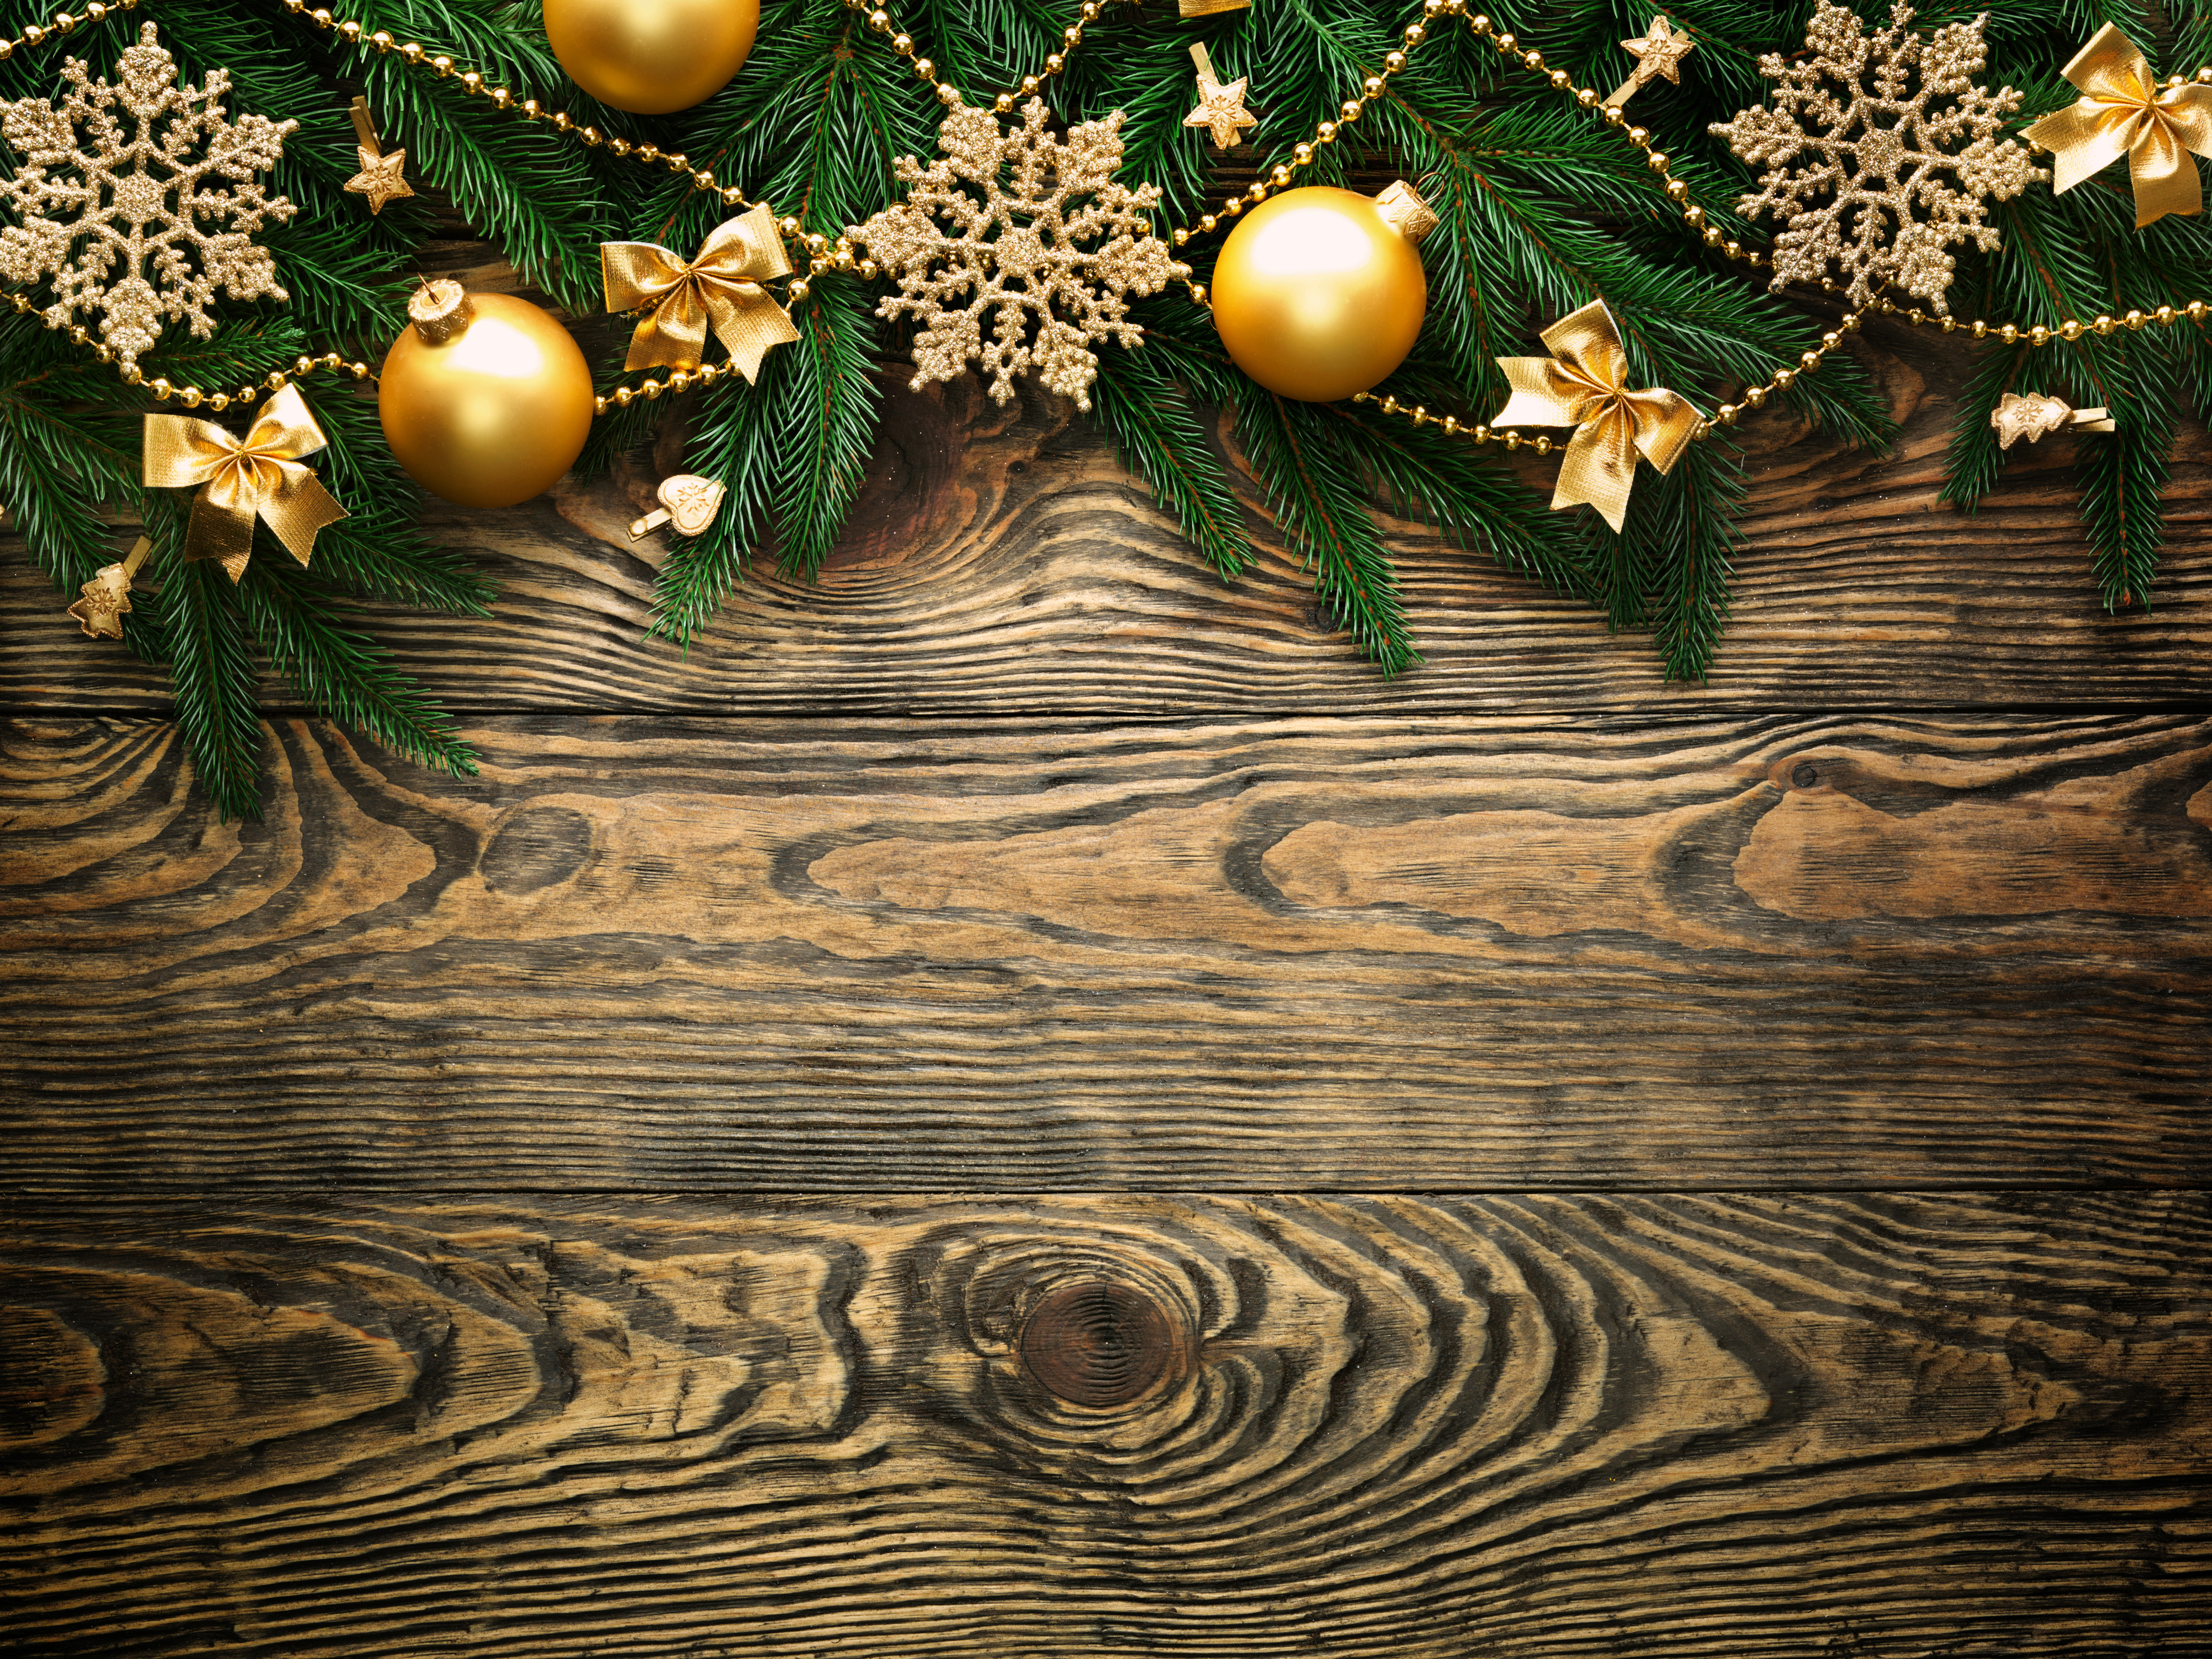 Fall Wooded Wallpaper Wooden Christmas Background With Gold Ornaments Gallery